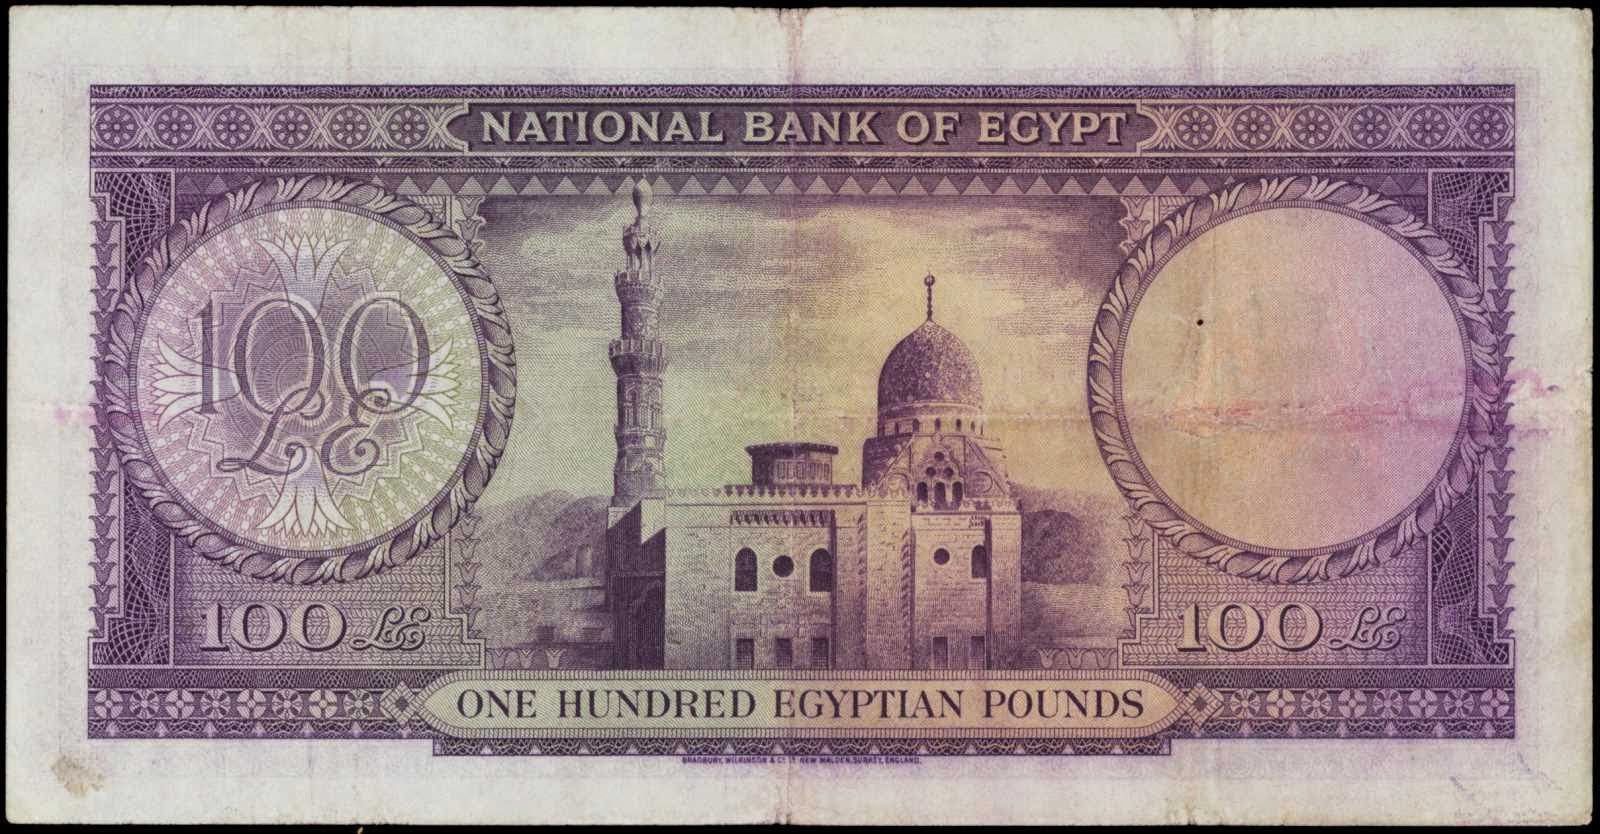 Egypt paper money 100 Pounds note